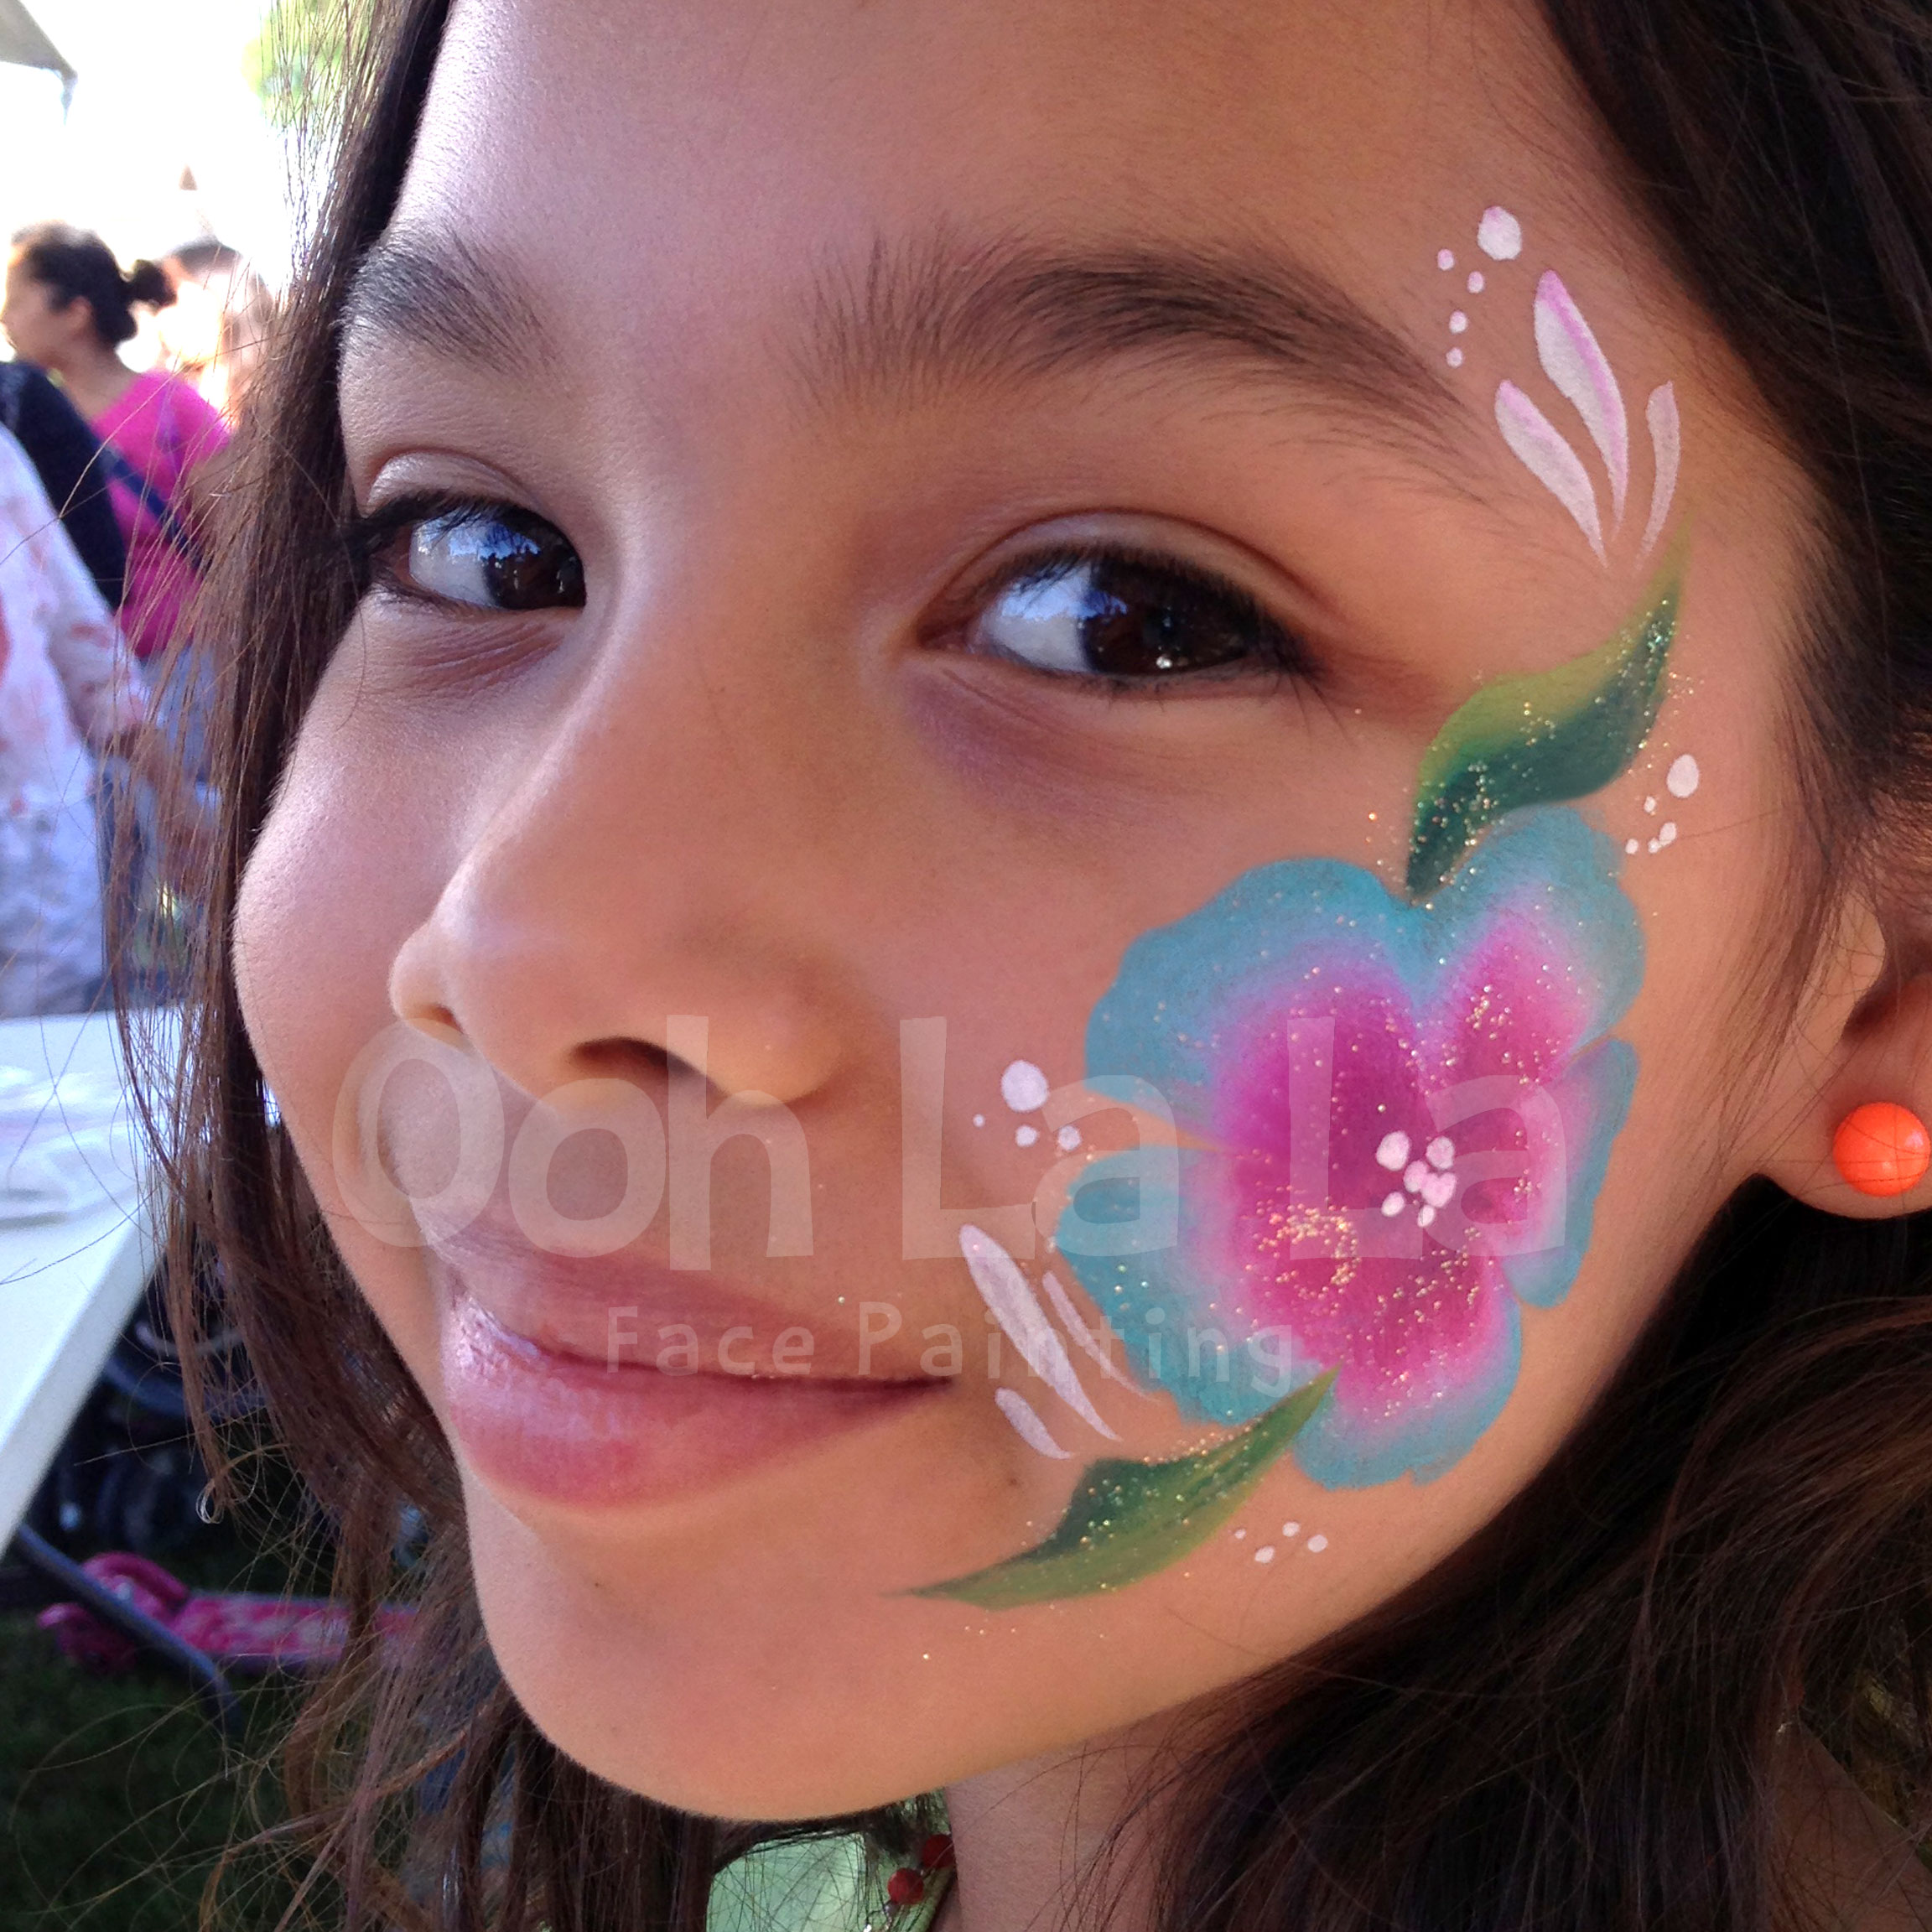 Ooh-LaLa-face-painting-flower.jpg